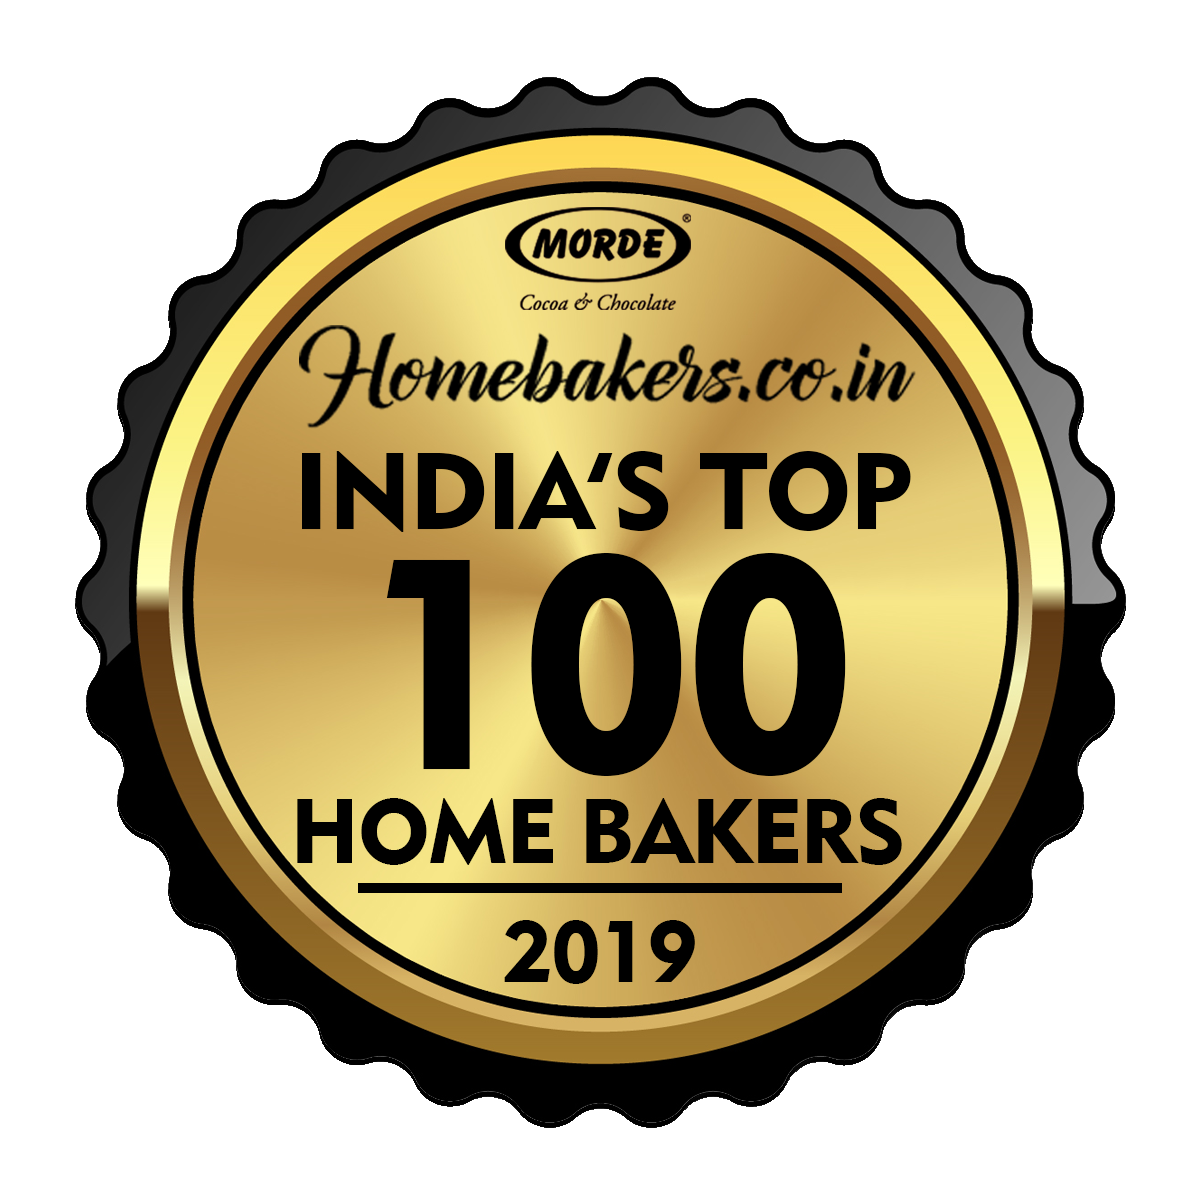 India's Top 100 Home Bakers